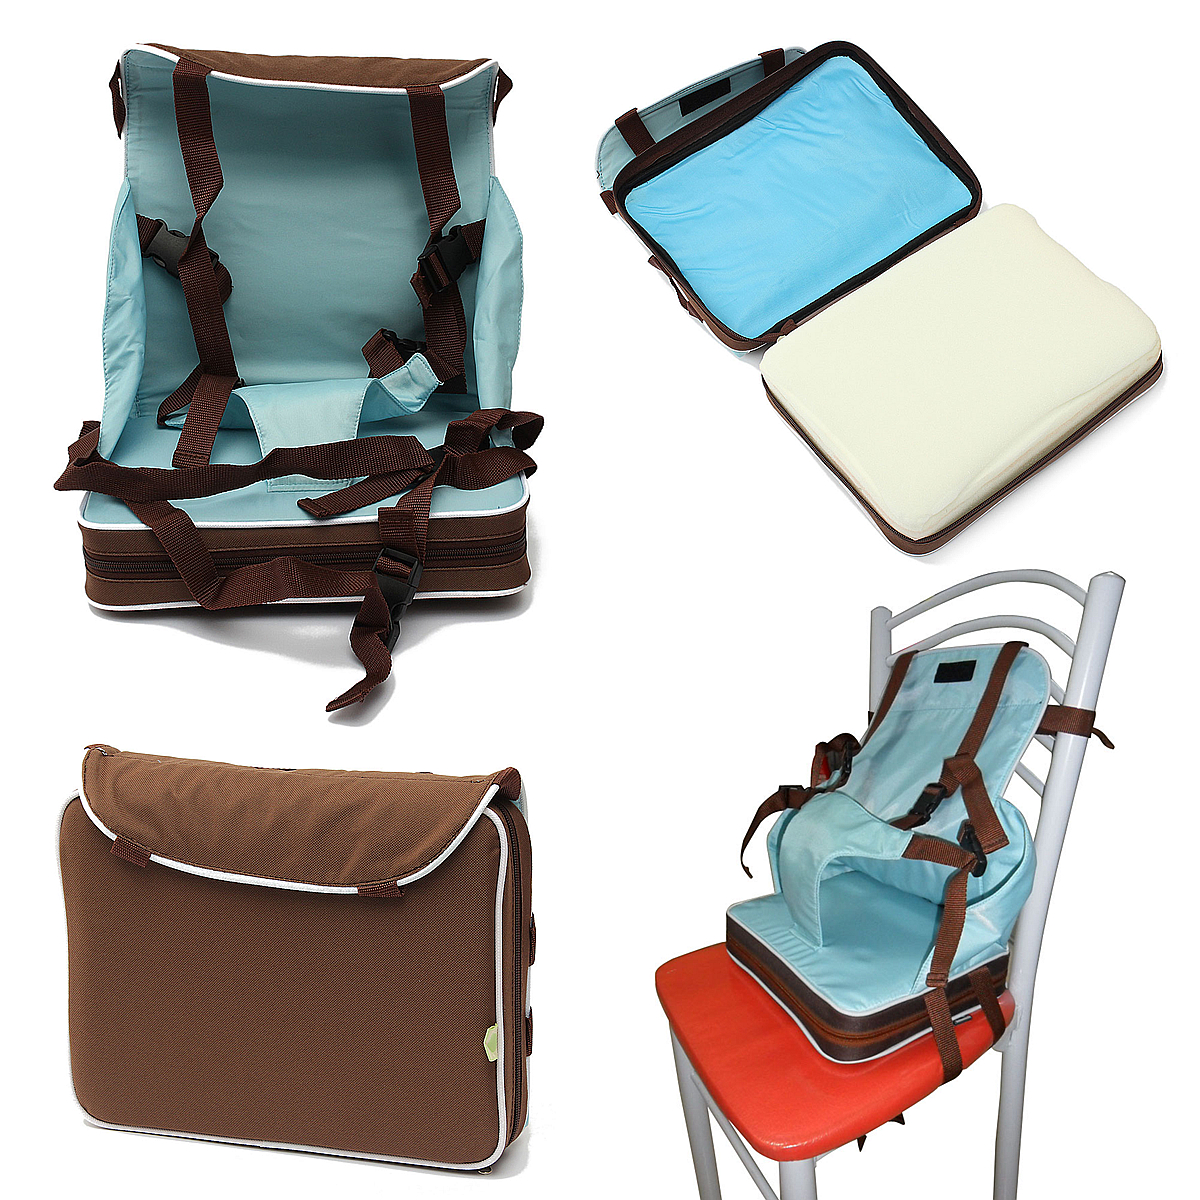 Booster High Chair Seat Compact Travel Booster Seat